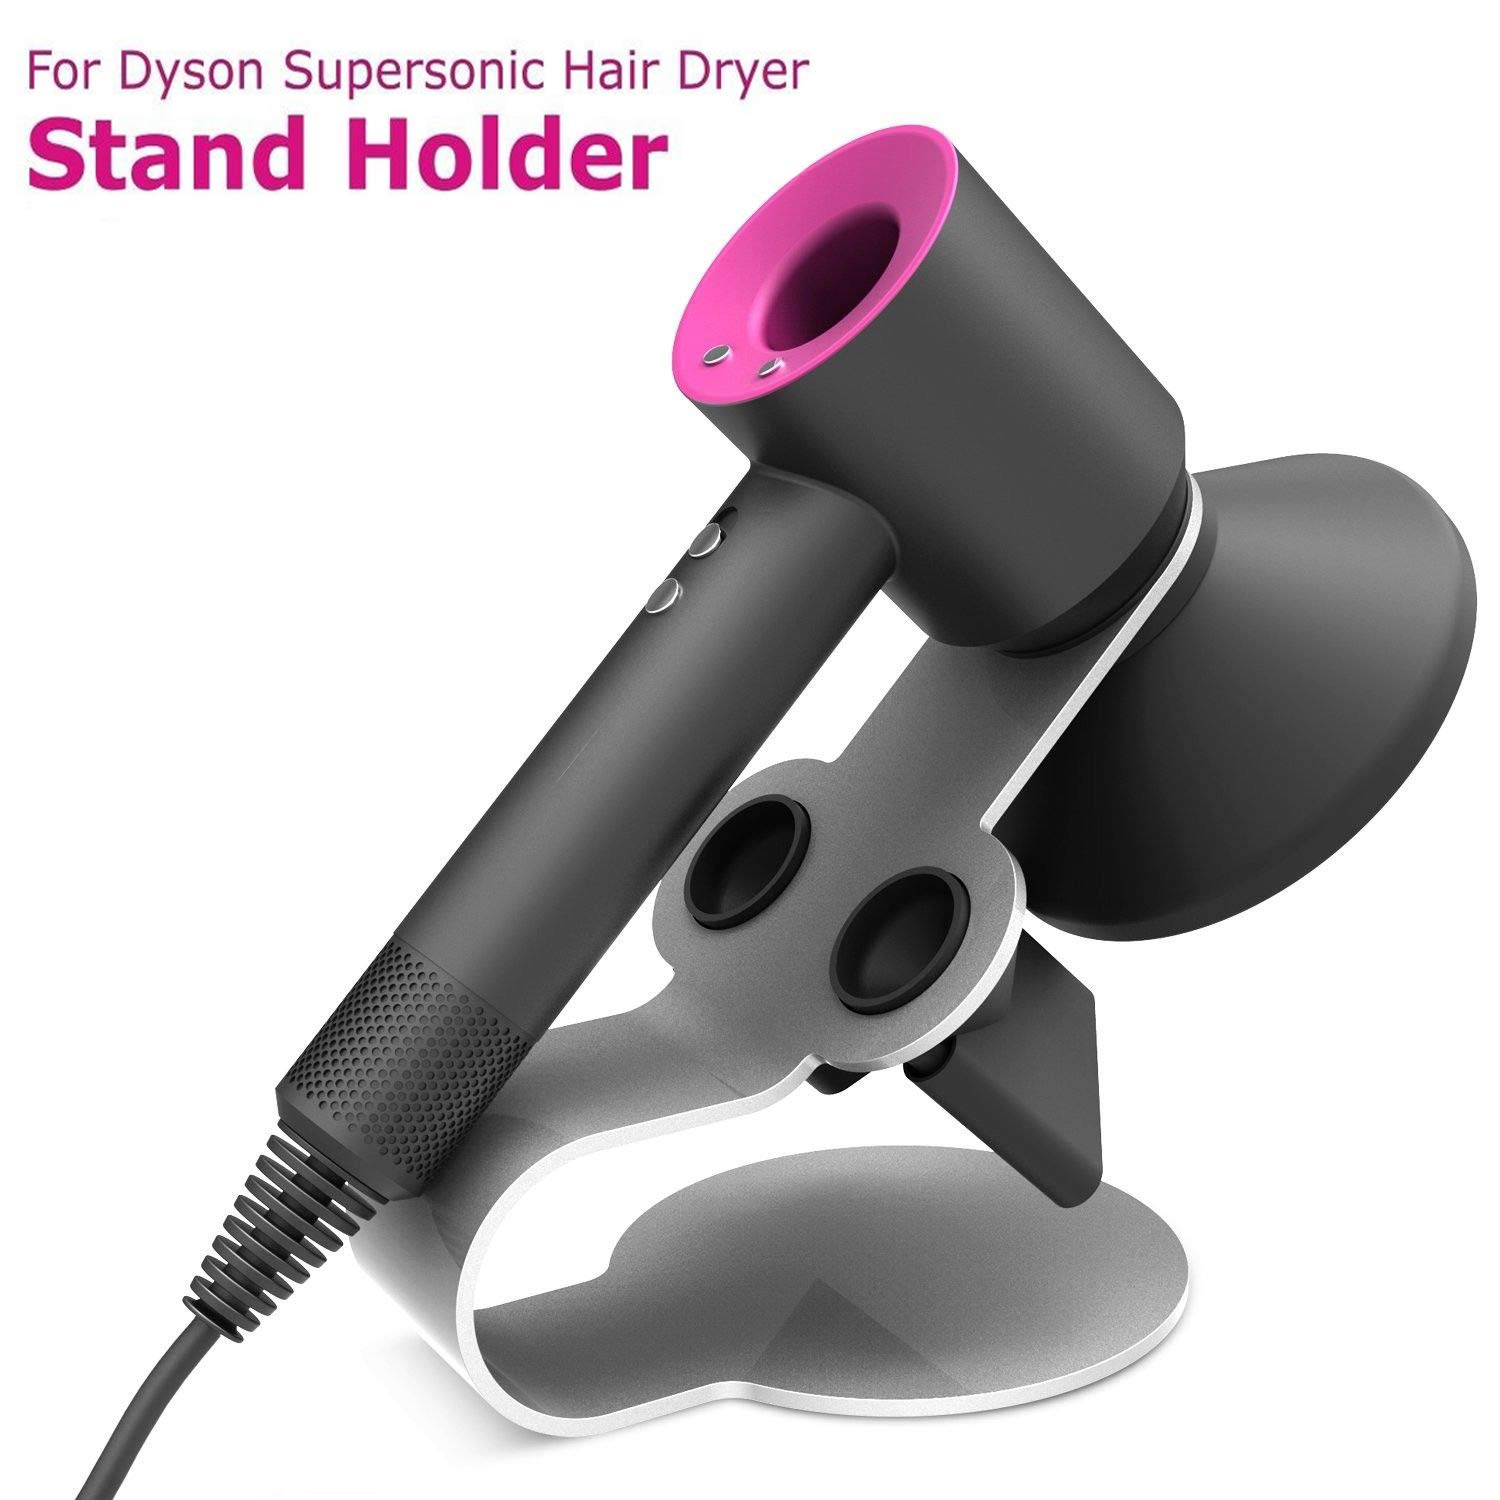 Premium Stand Holder for Dyson Hairdryer, Sensico Magnetic Aluminum Alloy Bracket Dock Station Accessory Organizer for Dyson Supersonic Hairdryer, Diffuser and Two Nozzles Stand